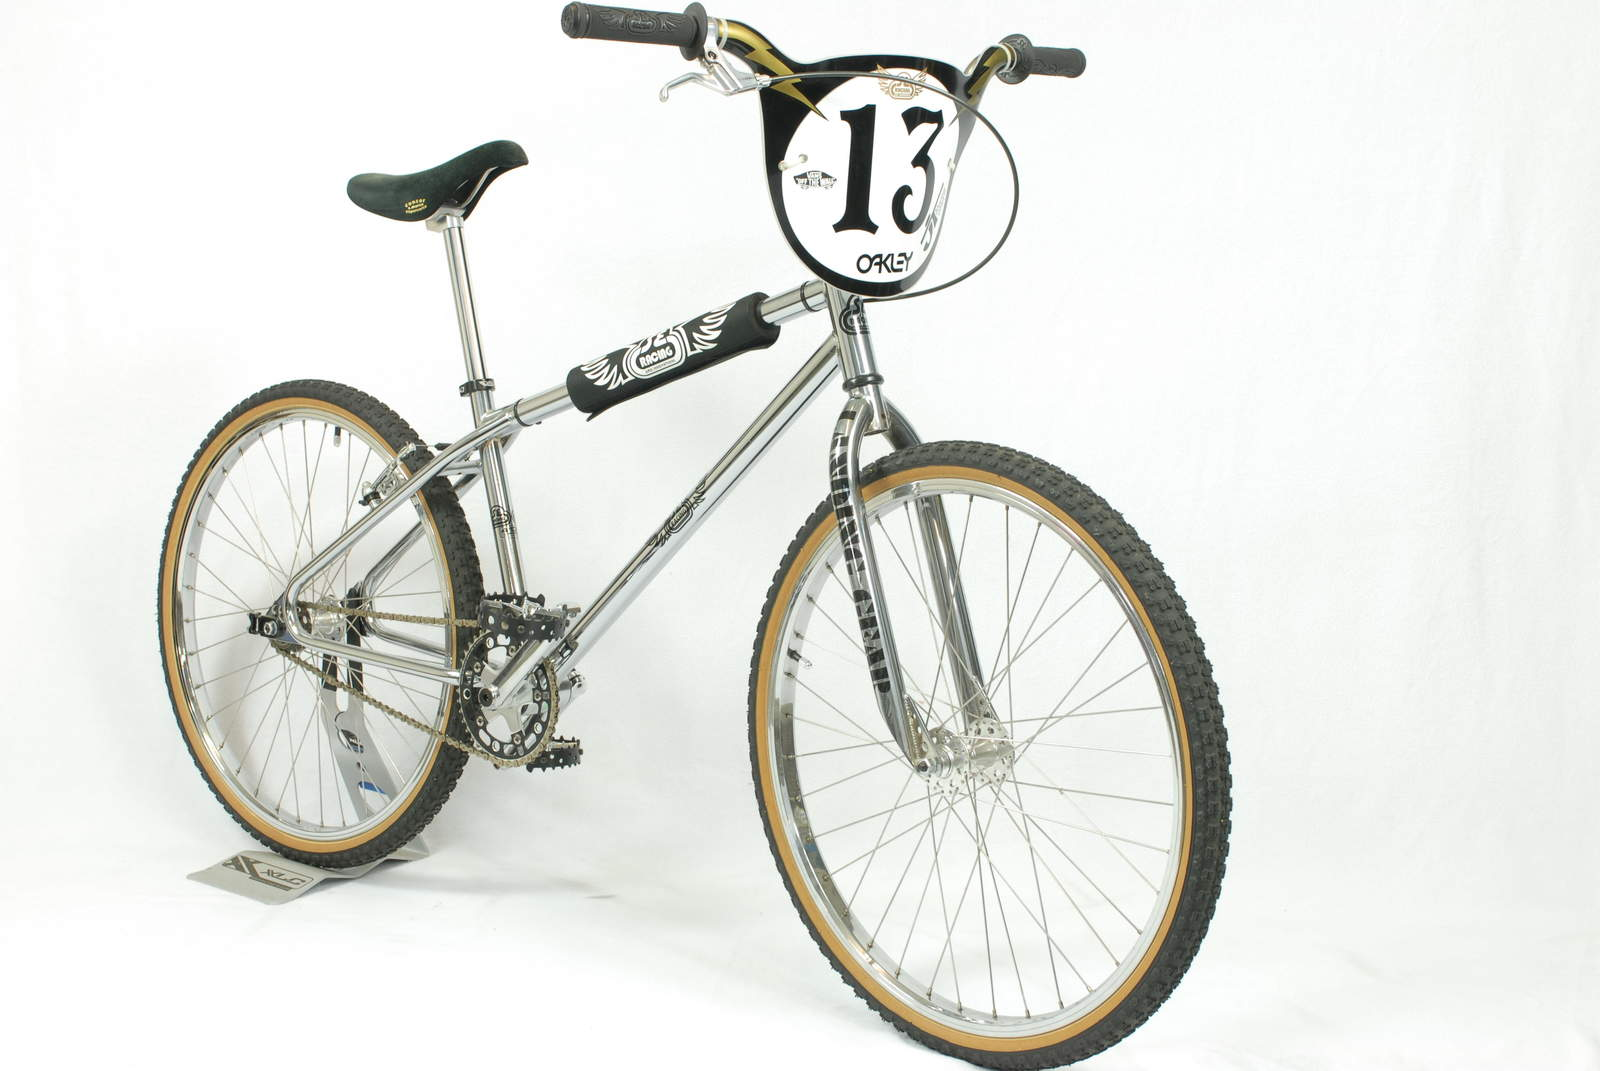 http://uploads.bmxmuseum.com/user-images/88664/dsc_02315c6a49fb71.jpg